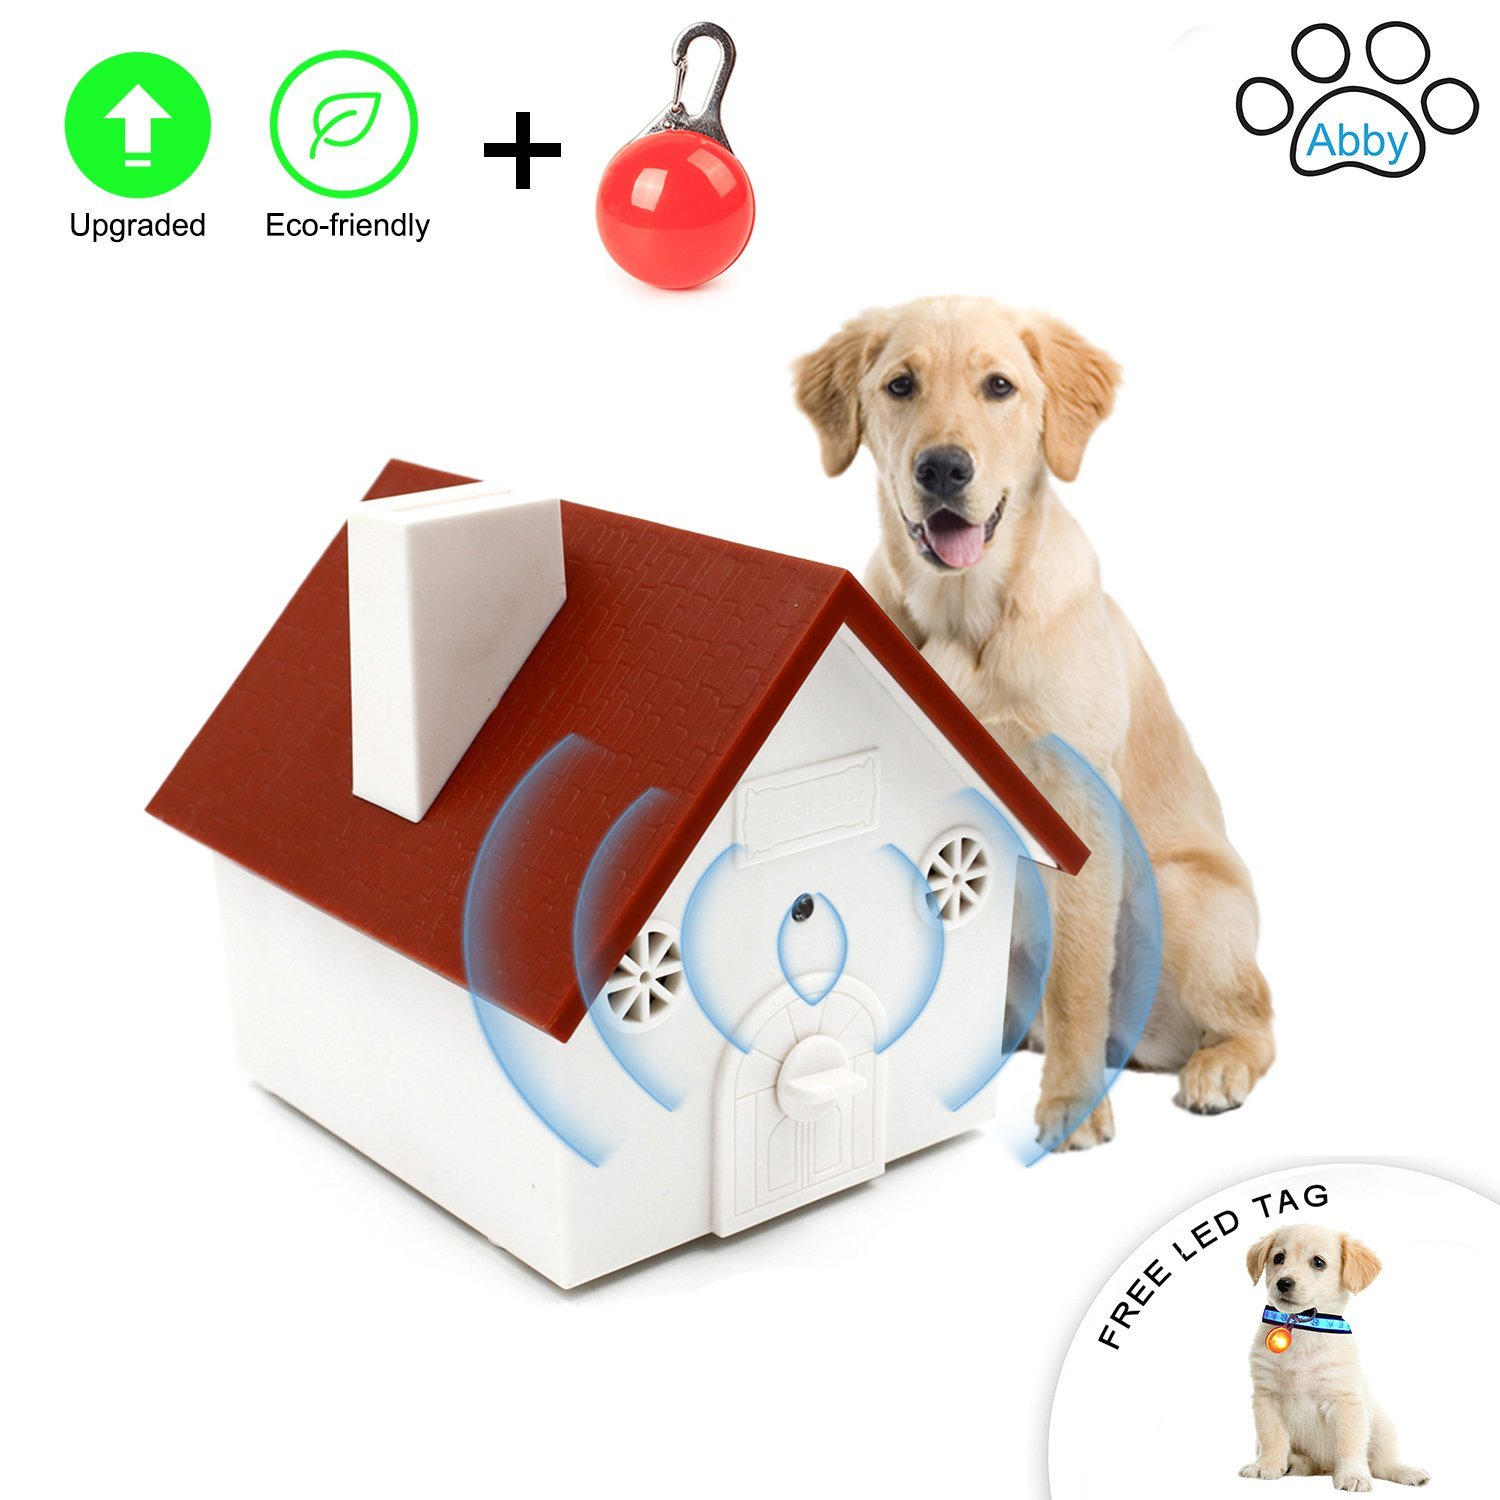 Abby Newest Upgraded Value Pack, Super Ultrasonic Anti Barking Device- Bark Control Deterrents- Training tools- No Harm- Hanging Birdhouse Design Training Dogs, FREE LED CLIP-ON PET SAFETY LIGHT Abby Collections